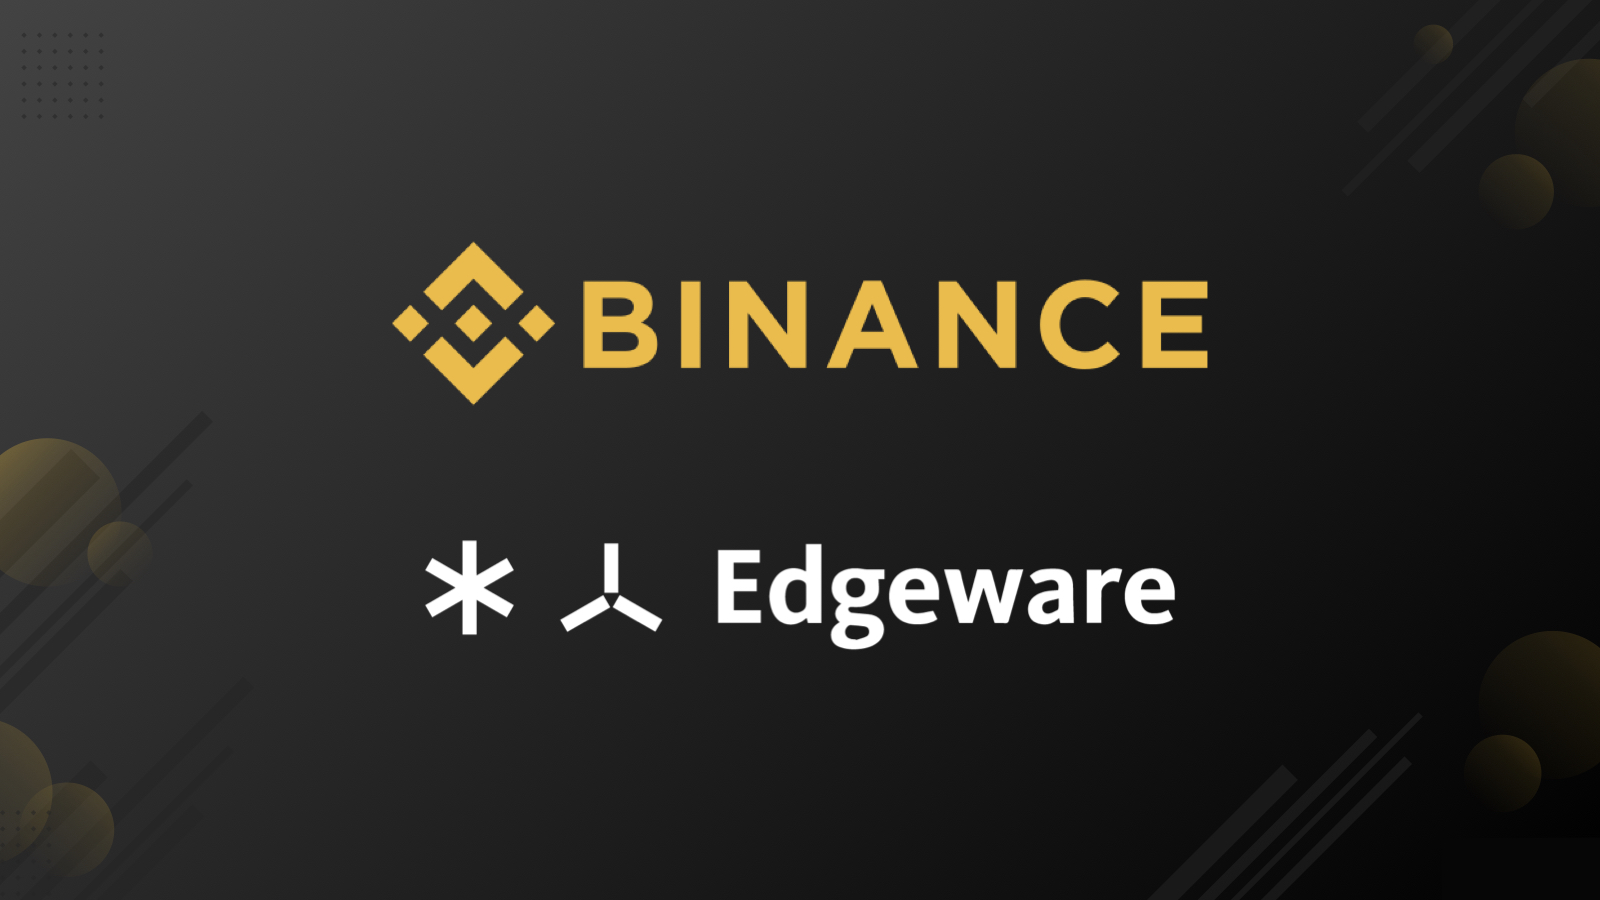 Did You Hold ETH on Binance? Congratulations, You'll Get